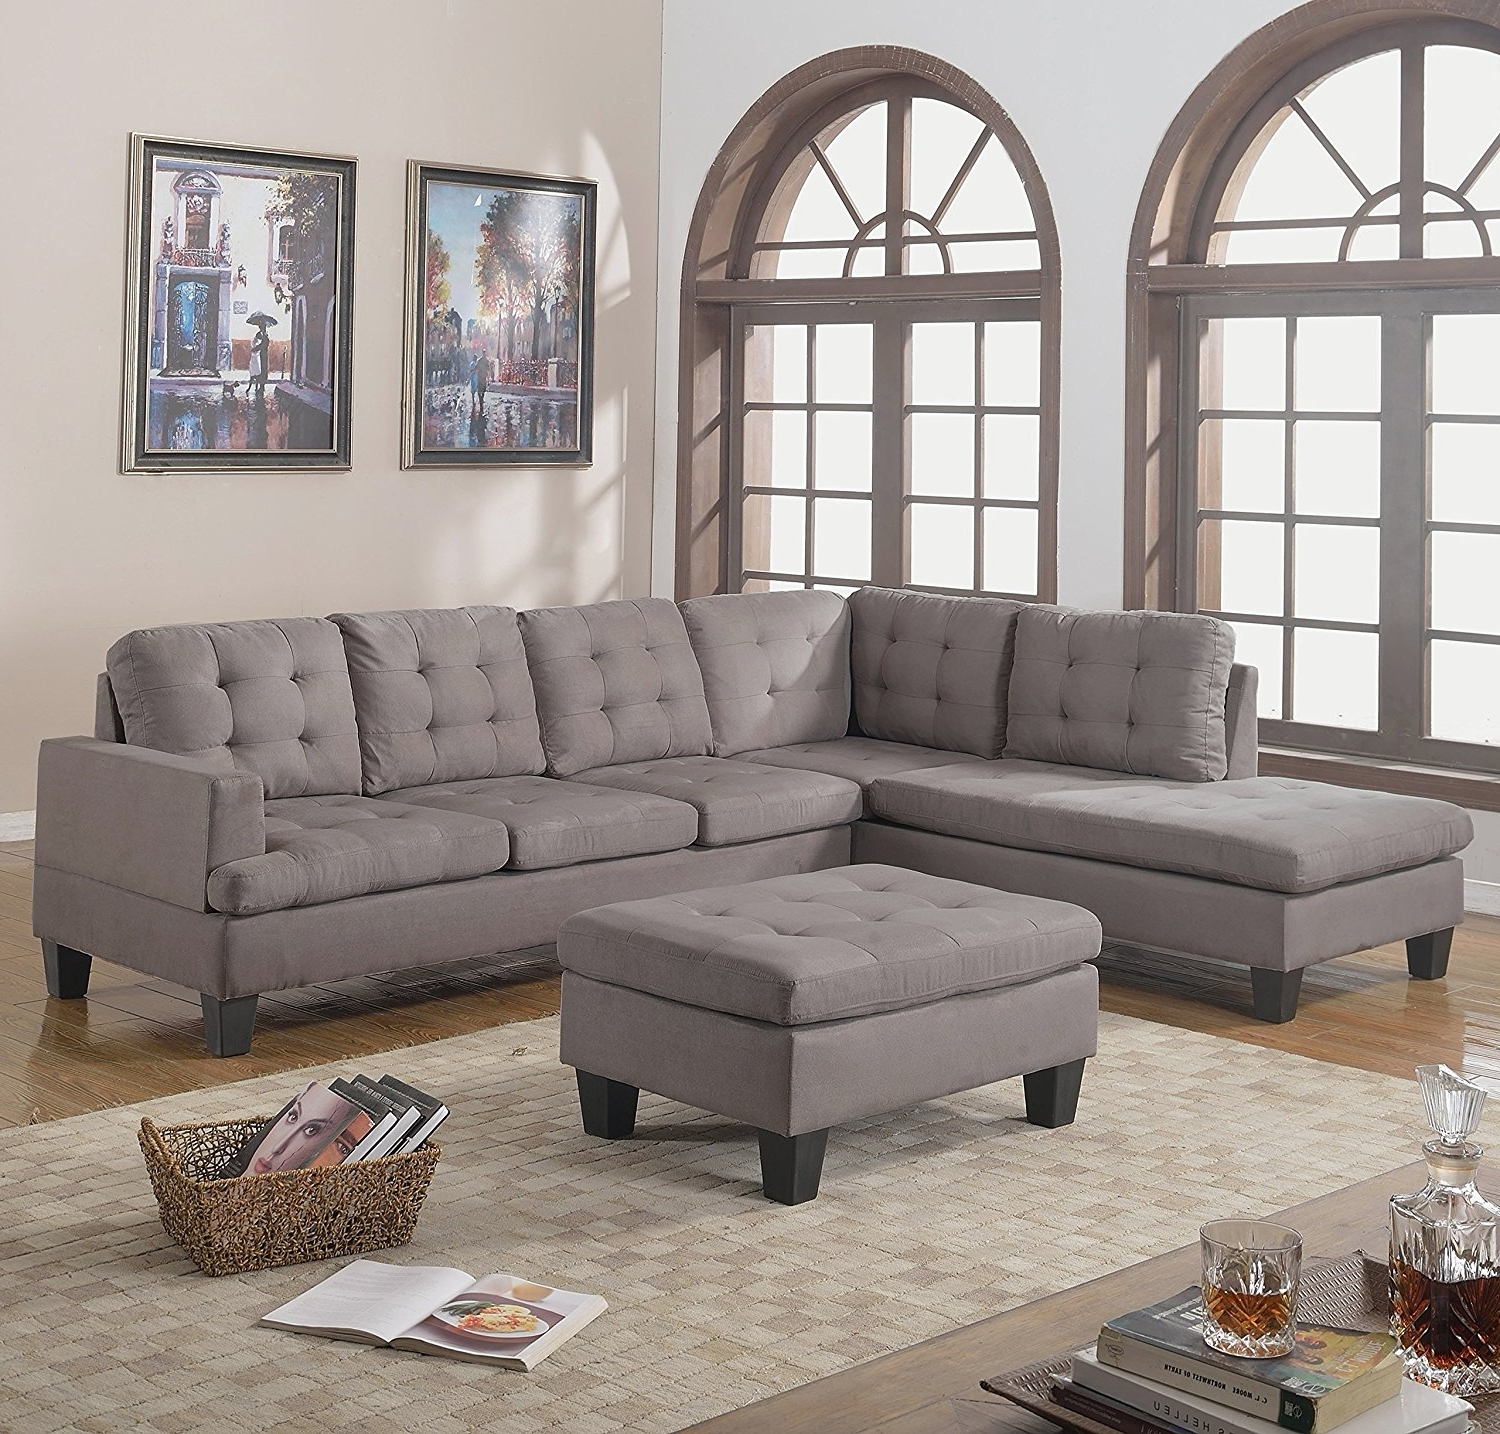 Furniture : American Furniture Warehouse 470 Living Room Furniture Intended For Famous St Cloud Mn Sectional Sofas (View 4 of 20)